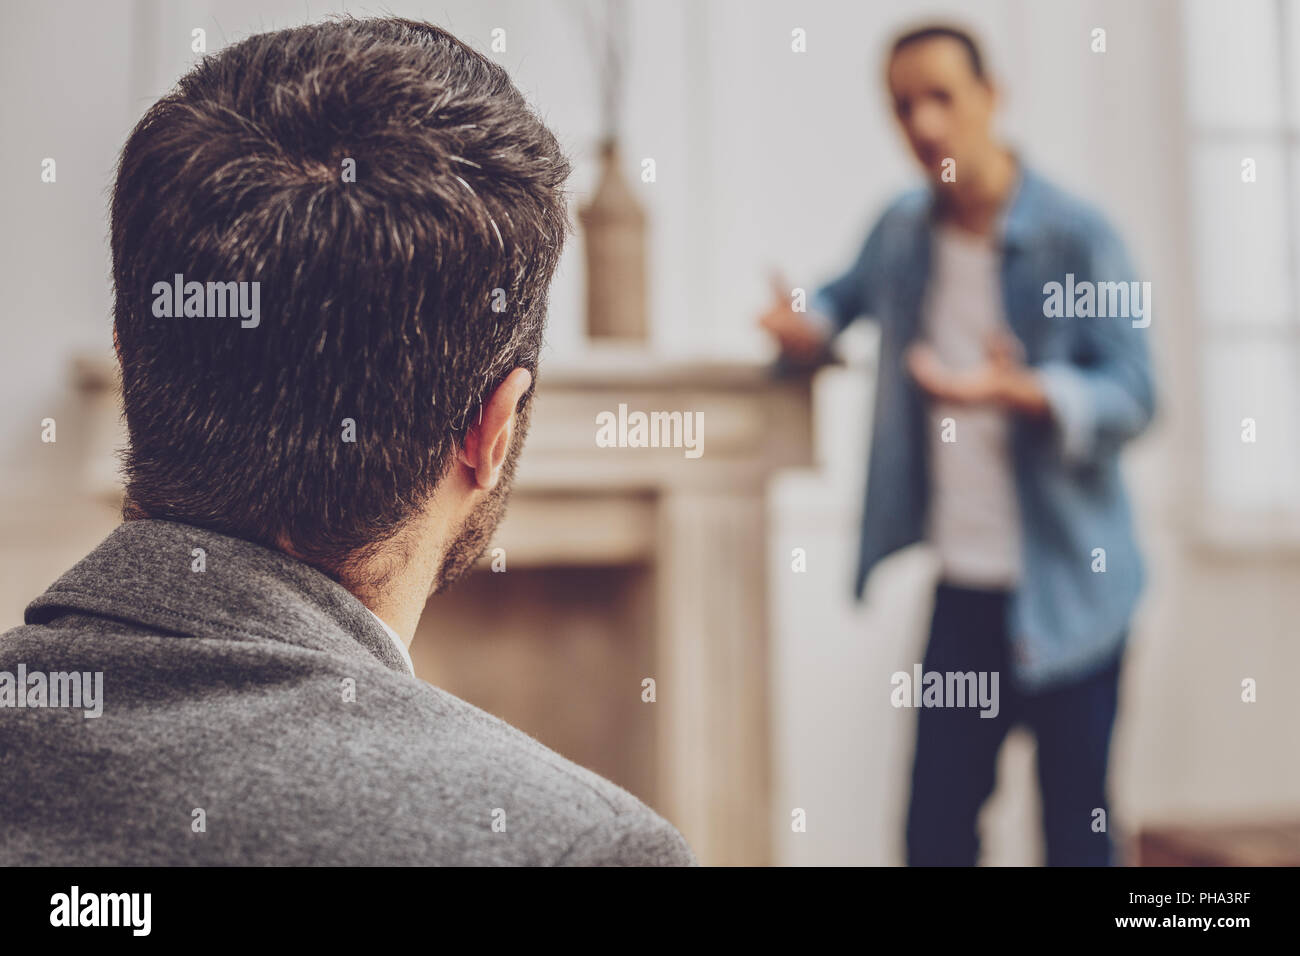 Competent practitioner listening to his visitor - Stock Image